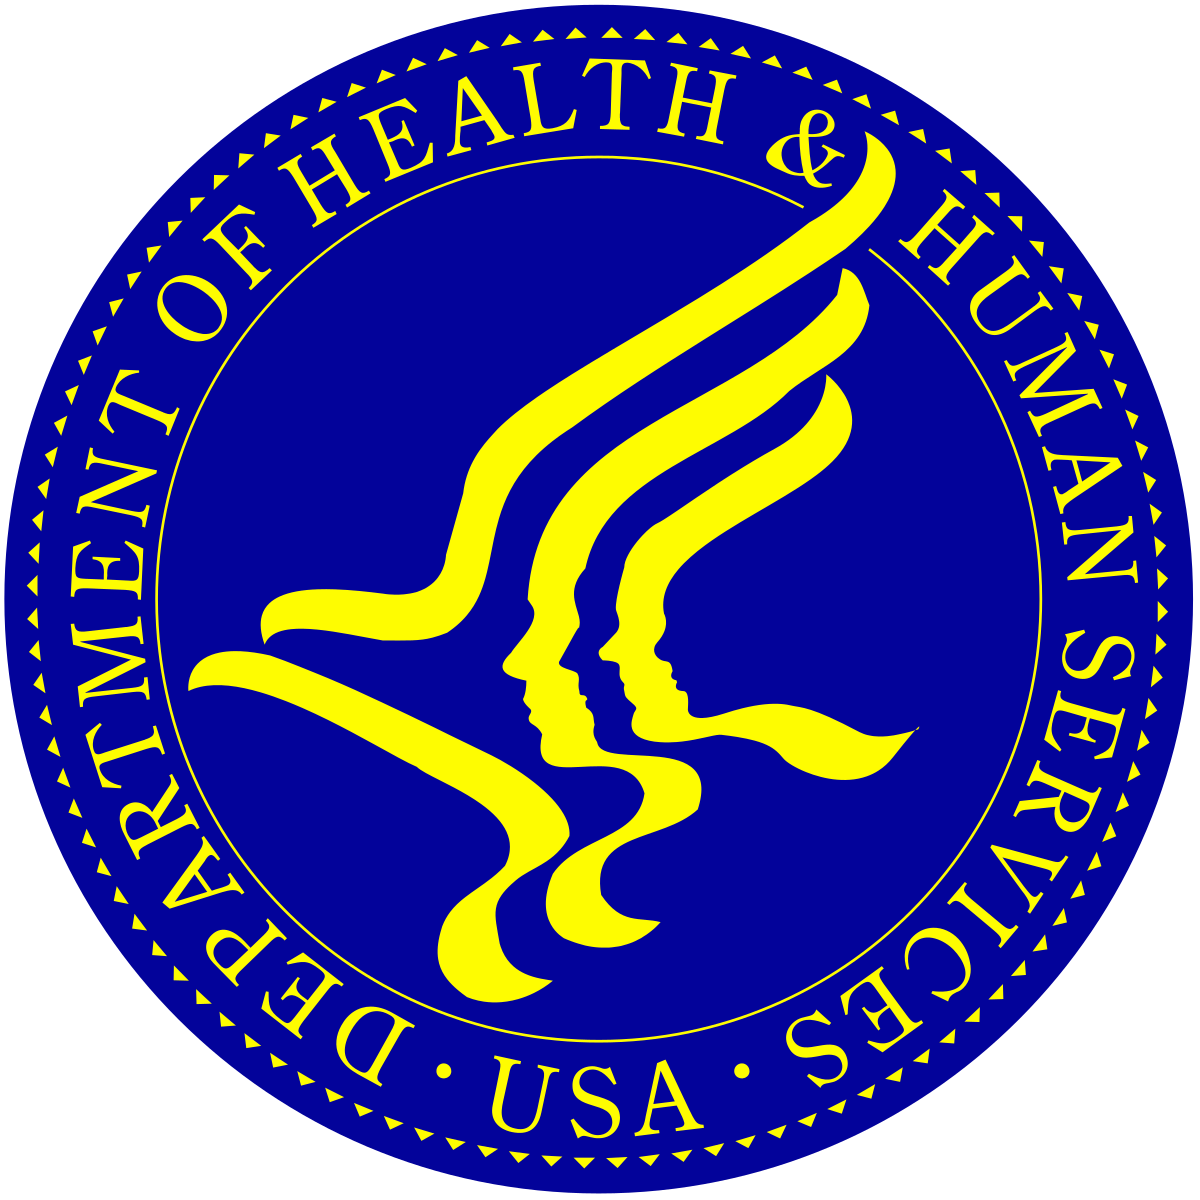 United States Assistant Secretary For Health Png - United States Department of Health and Human Services - Wikipedia